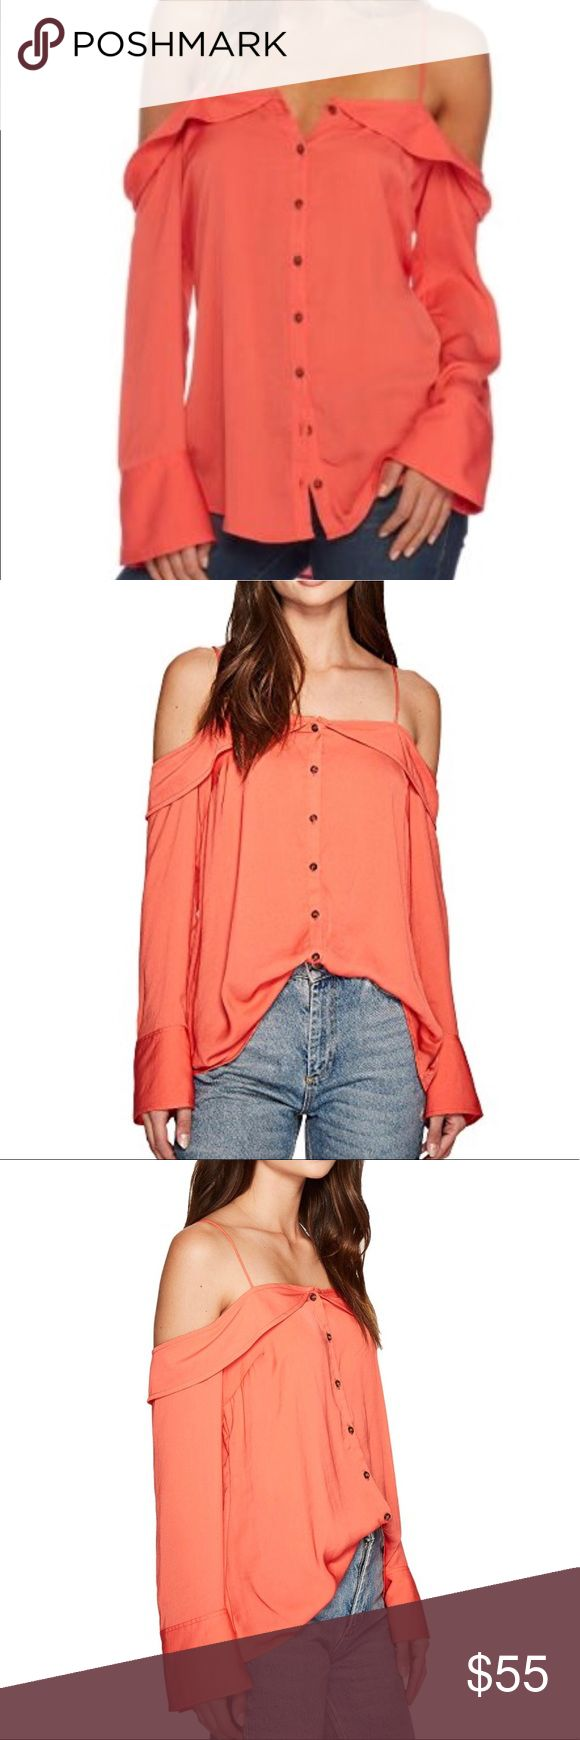 Free People off the shoulder orange top Free People off the shoulder orange top. button details on the sleeves. i add different picture to how different ways of wearing it. new with tag size small.  -No Stains, no holes, no rips, no fading. item is in great conditions.   -Color may slightly vary from photo.  -I work to provide quality products and the best customer service. All of my items are in great conditions. i would not sale something in a condition i would not wear. please message me…